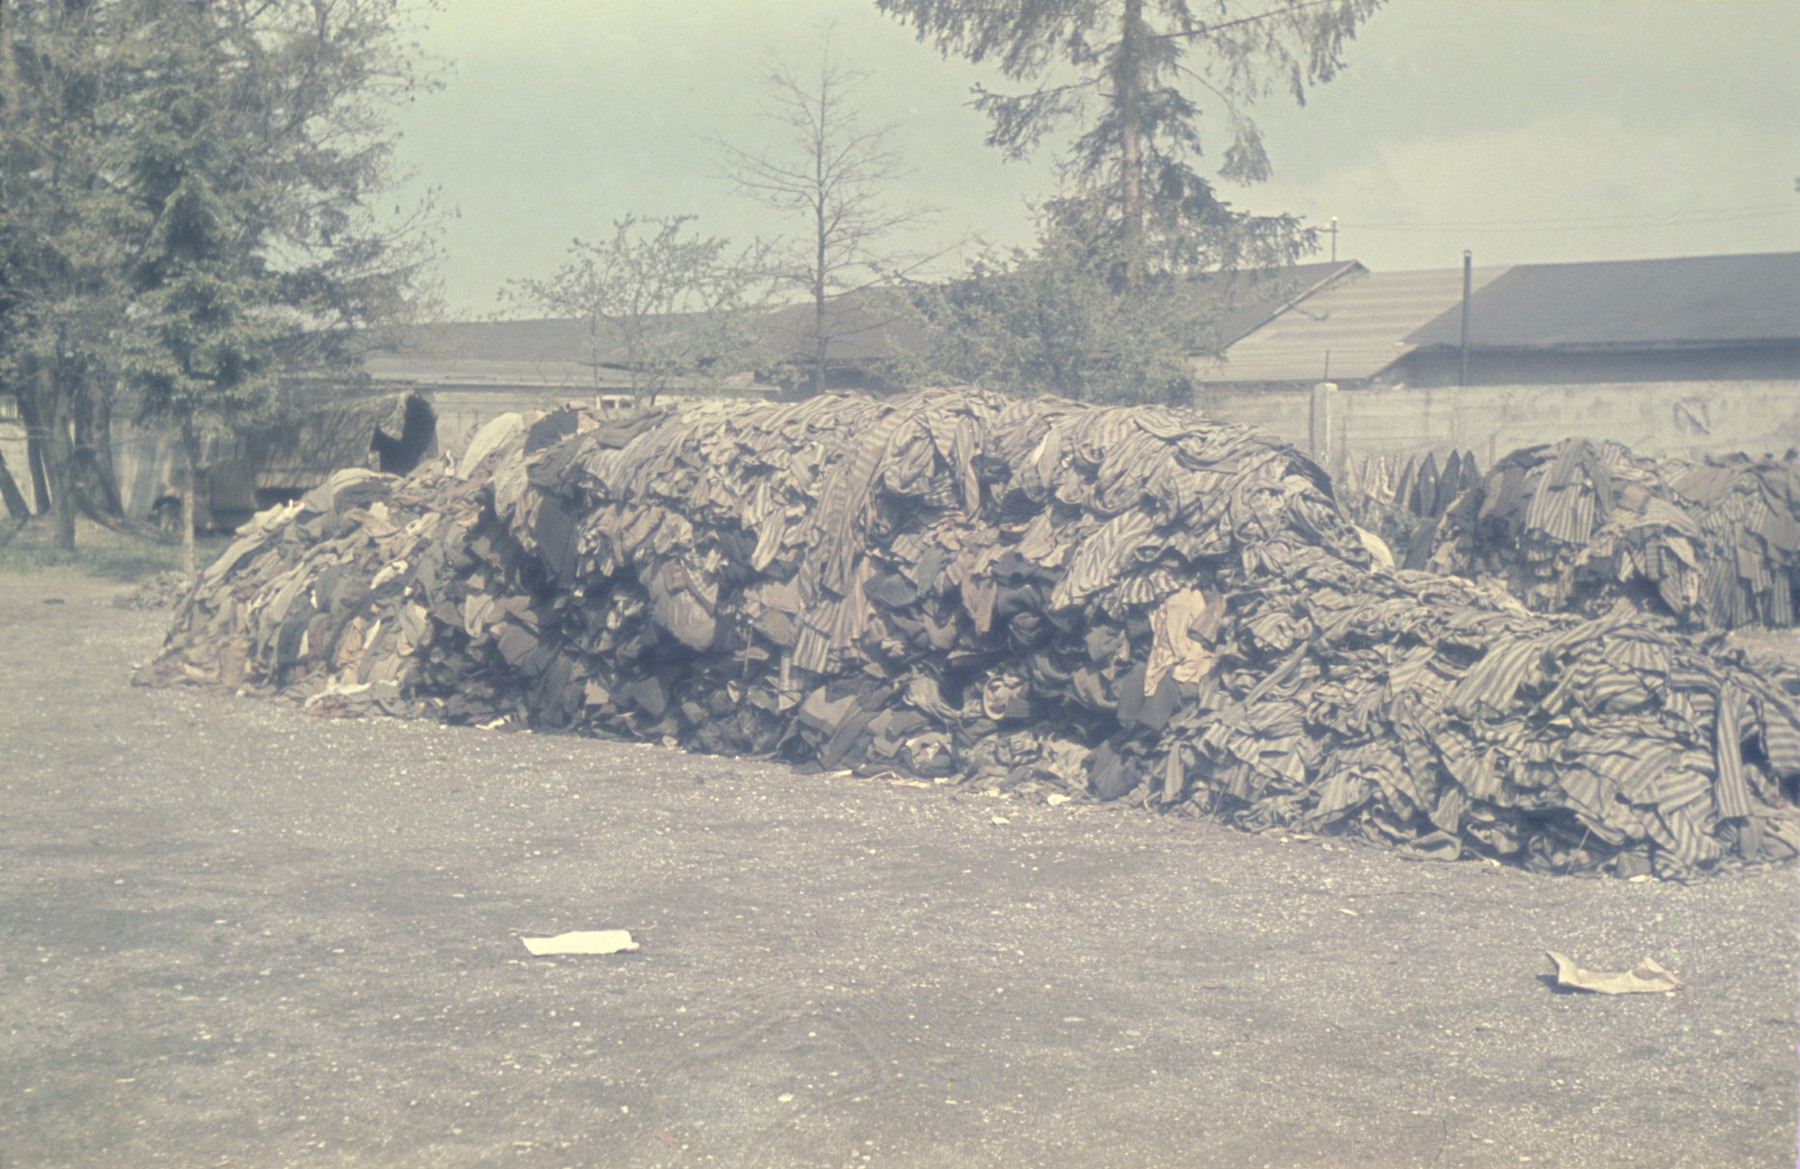 View of a huge pile of prisoner uniforms in front of a row of barracks in the newly liberated Dachau concentration camp.